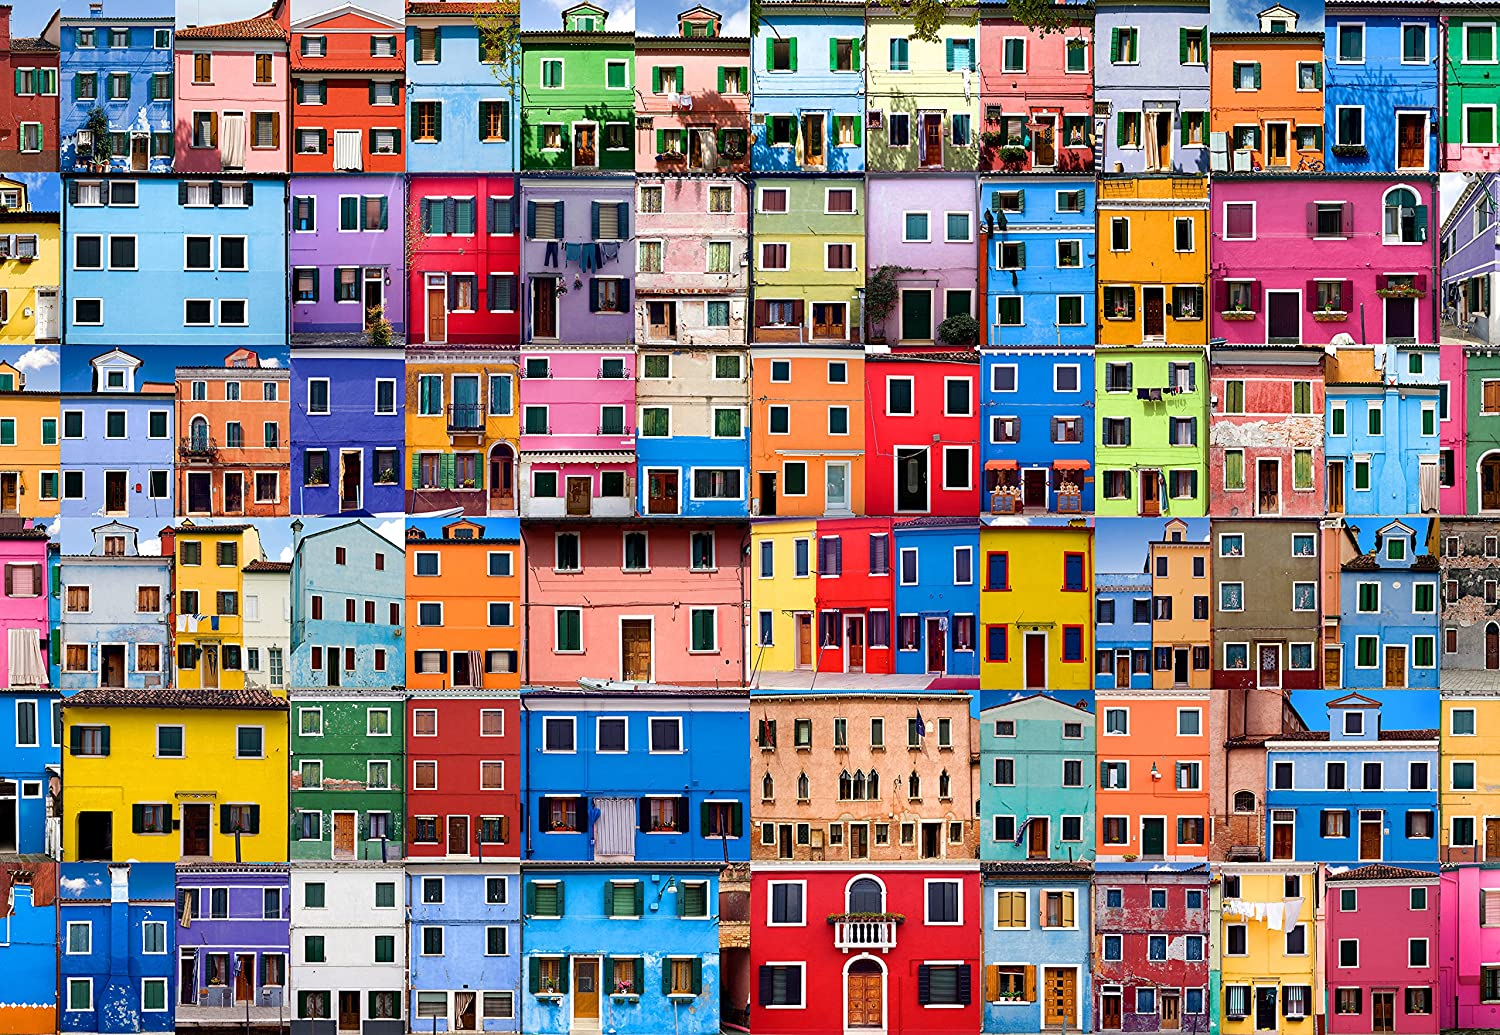 Puzzle Press | Colorful Houses Picture Puzzle 1000 Piece Family Jigsaw Puzzle - Beautiful Colorful Architecture Puzzles